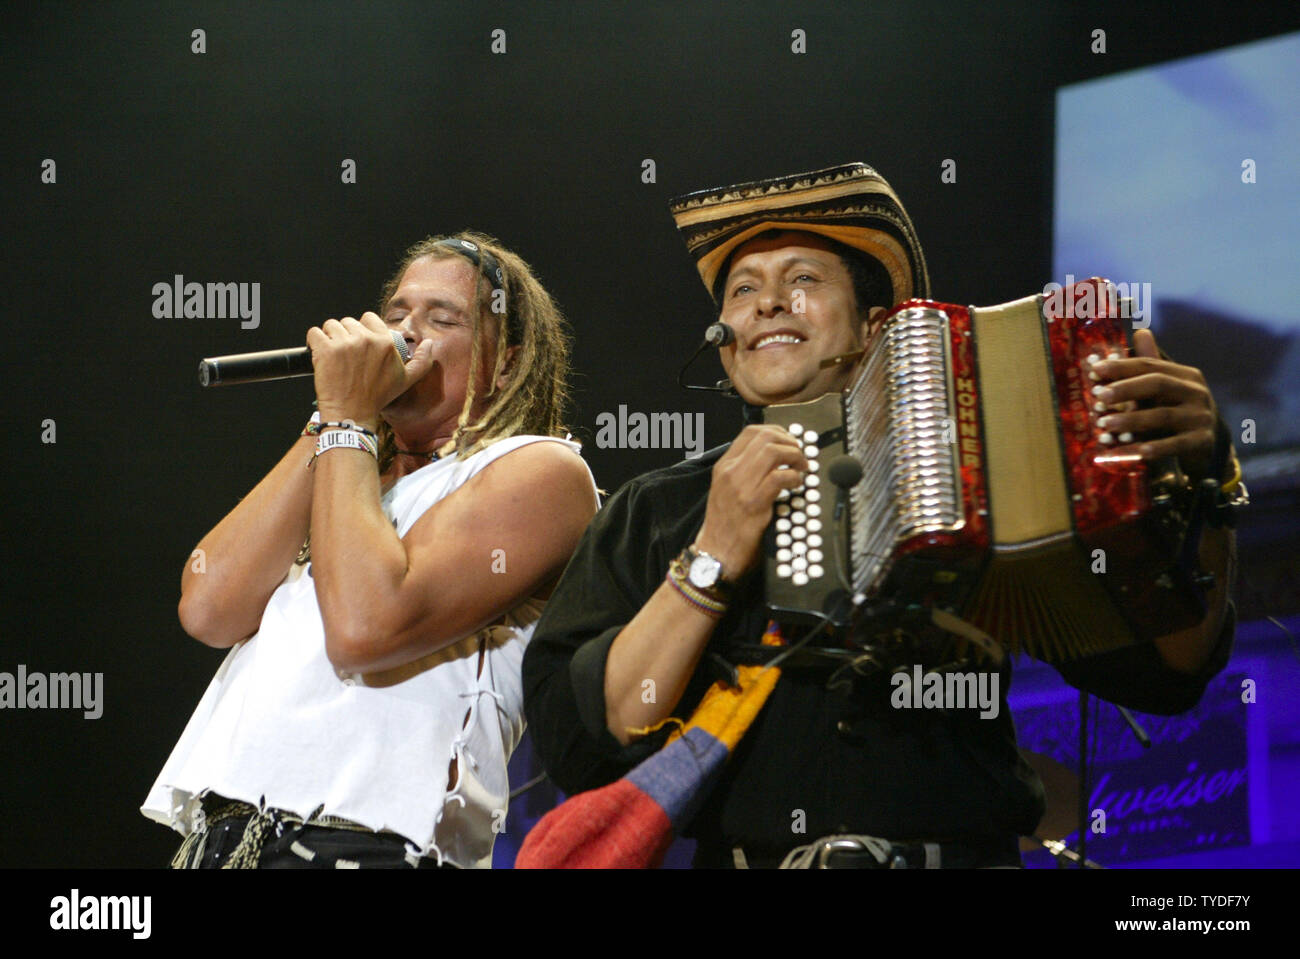 Carlos Vives(L) and band member performs in concert at the American Airlines Arena in Miami,  Florida, on August 13, 2005.  (UPI Photo/Michael Bush) - Stock Image